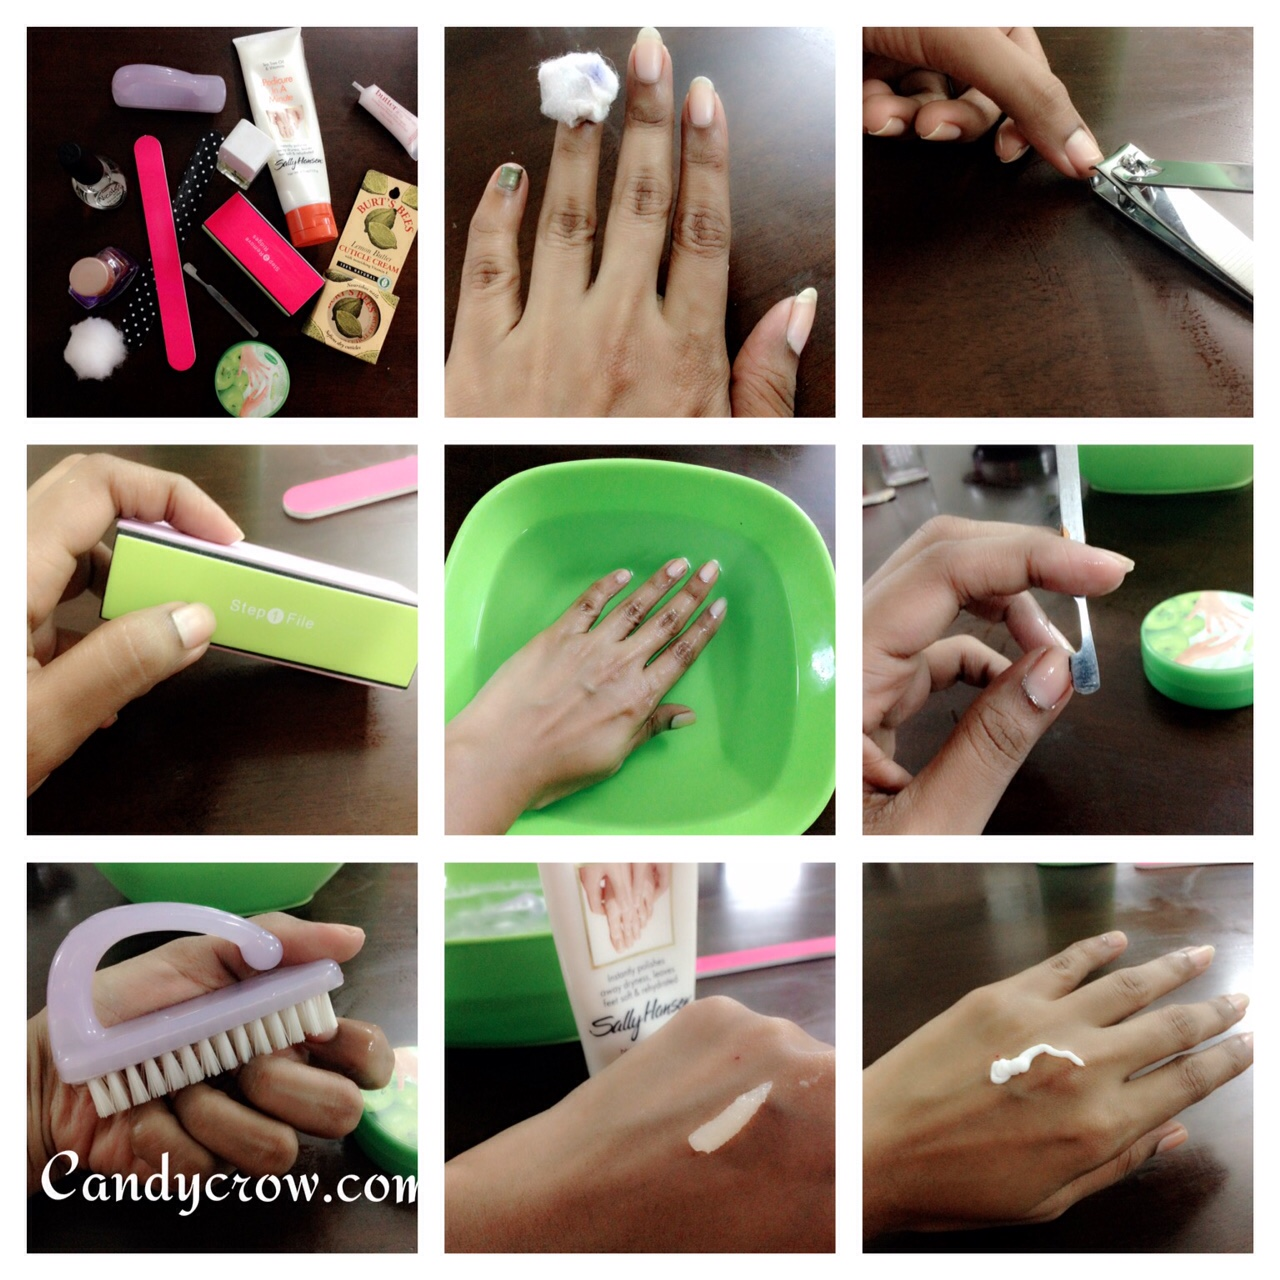 Diy manicure in 6 steps candy crow top indian beauty and diy manicure in 6 steps hoe to do manicure at home manicure steps solutioingenieria Choice Image